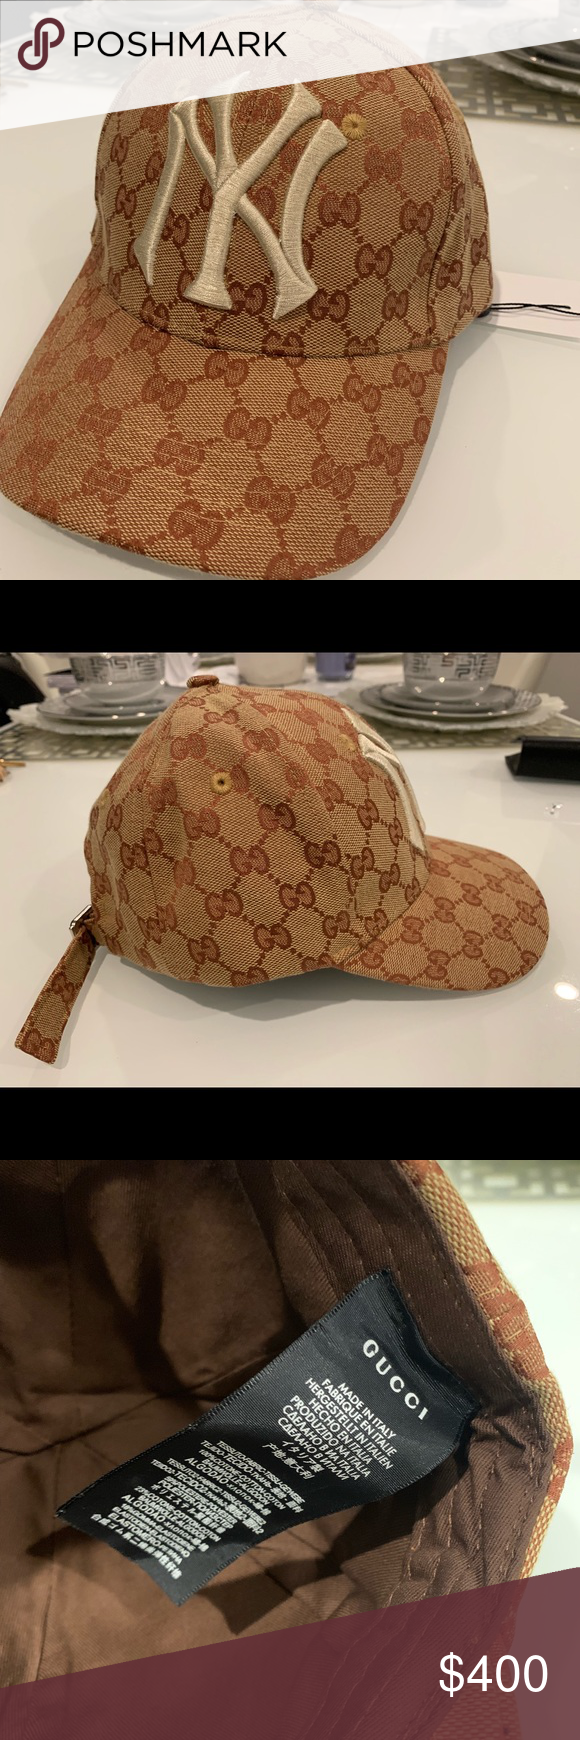 5537fce9 Gucci NY Yankees Baseball Cap Never worn, new style Gucci hat. One ...